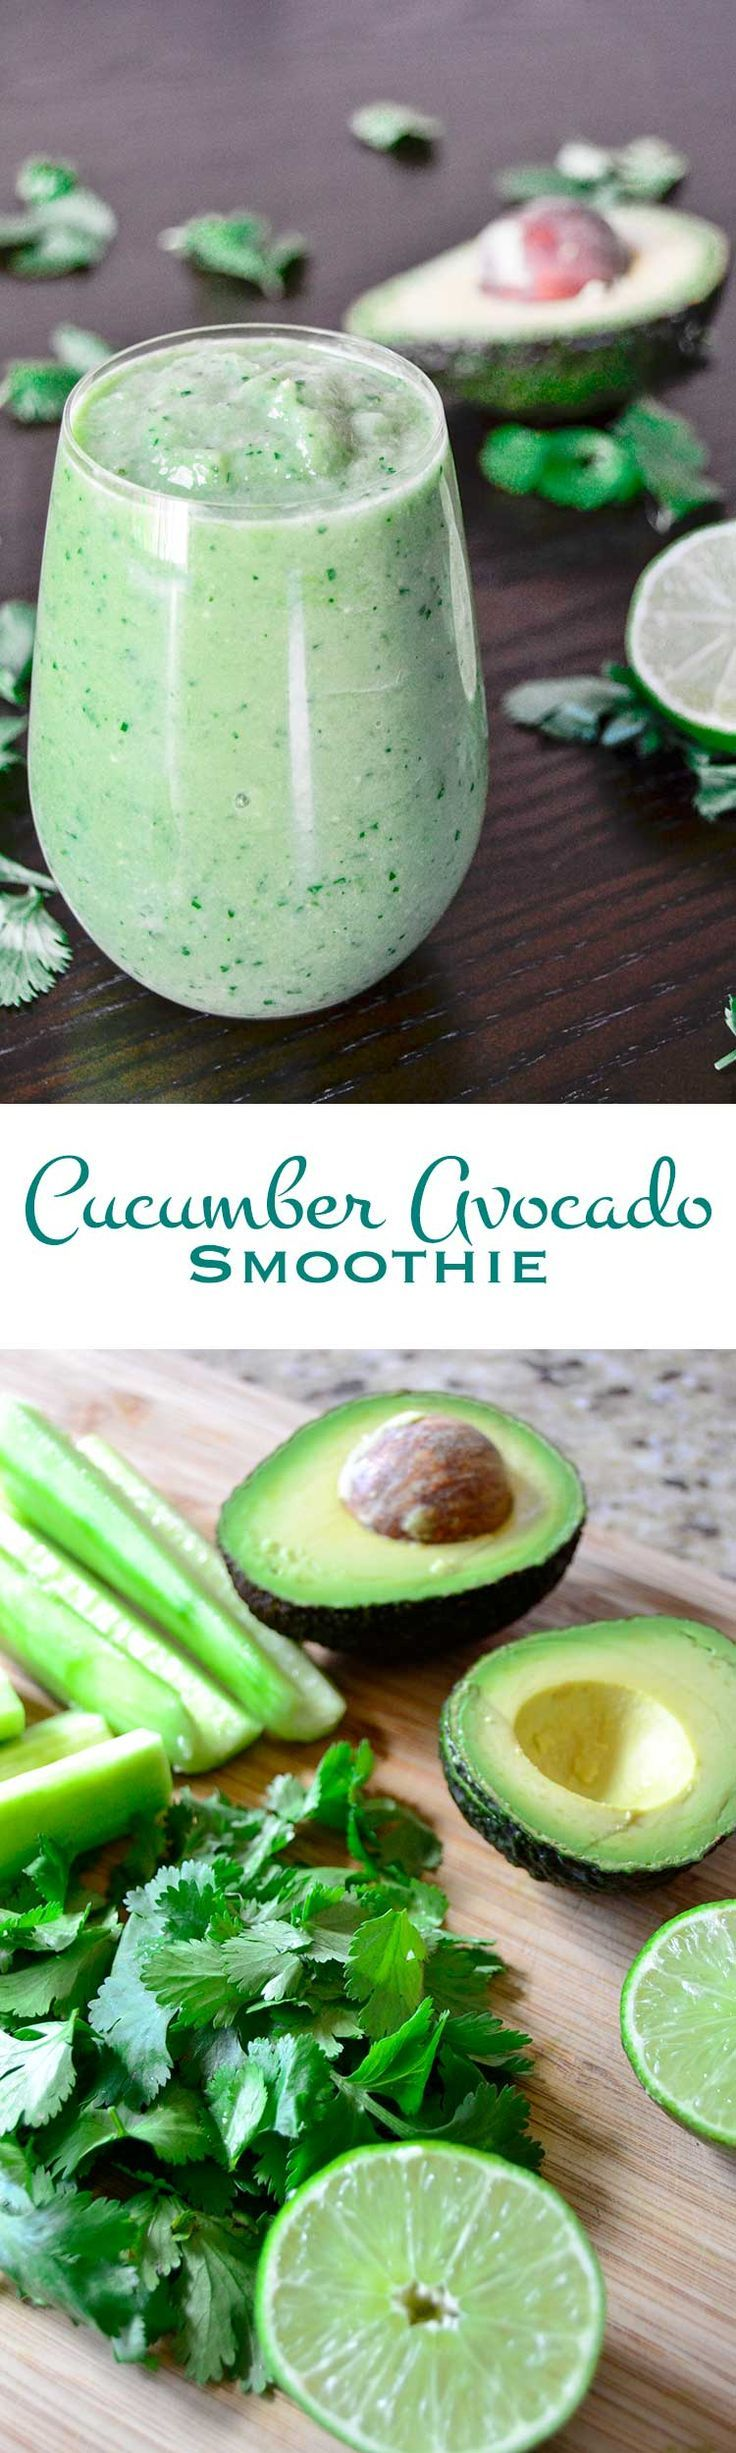 Cucumber Avocado #Smoothie: Buttery avocado, crisp cucumber, earthy cilantro, and bright lime juice combine to make this cucumber avocado smoothie a great way to start your day. #healthy #yummy